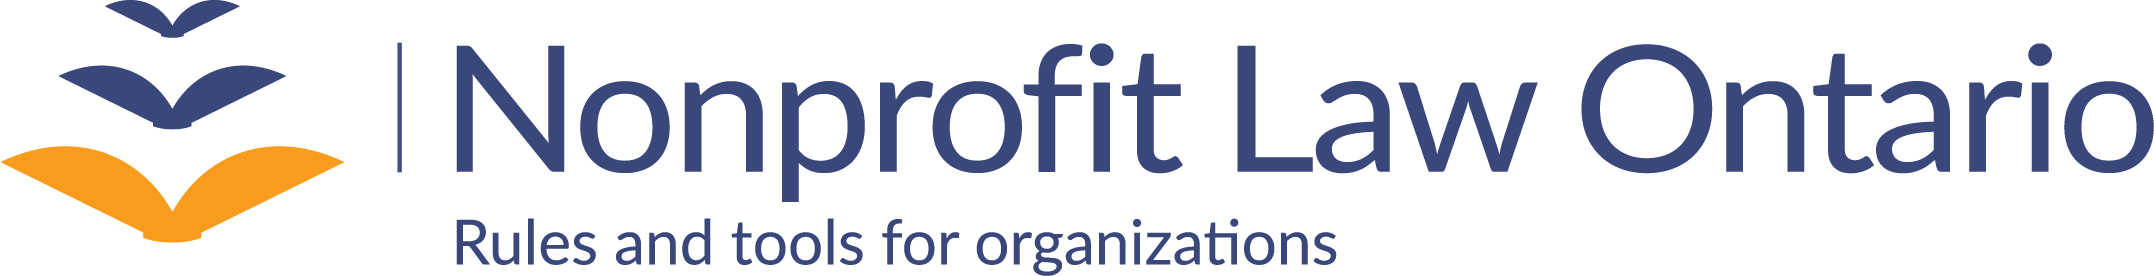 Nonprofit Law Ontario